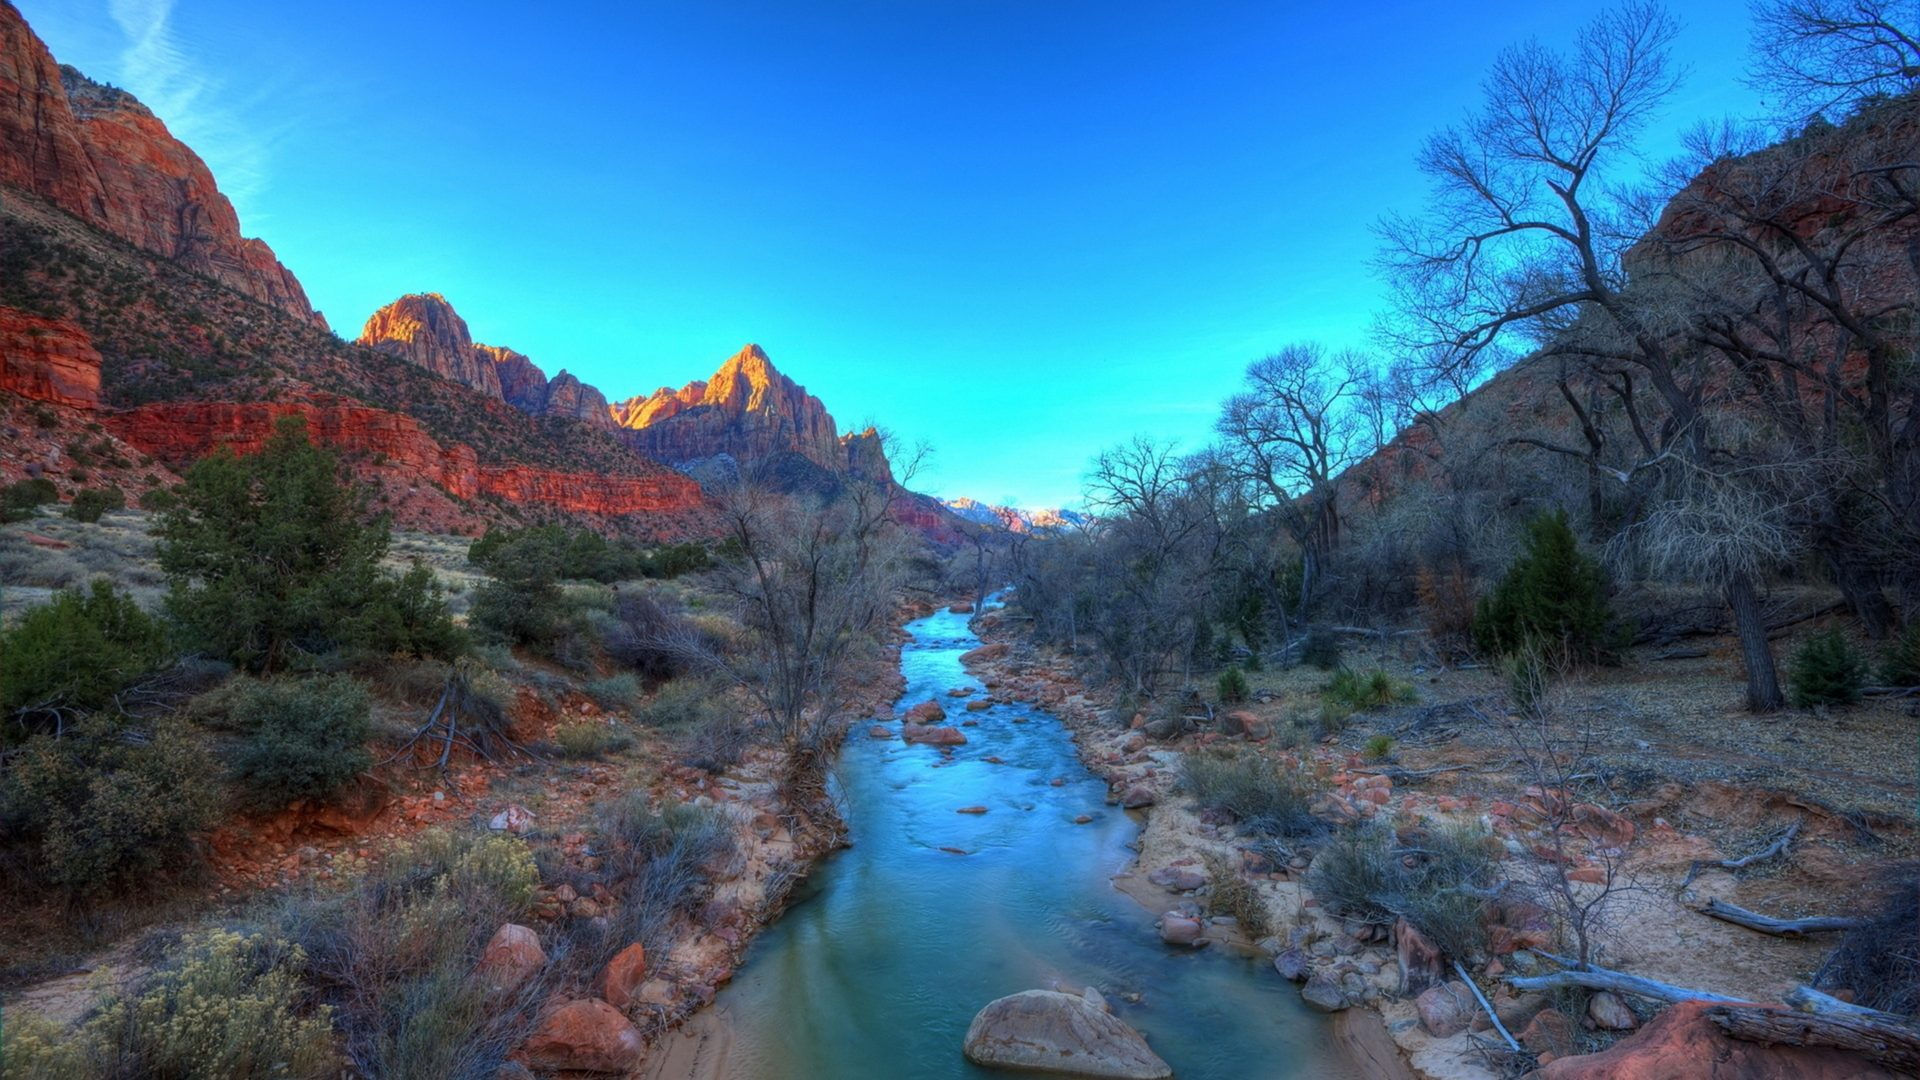 Pop Art Wallpaper Iphone Virgin River Zion National Park Landscape Mountains Sky